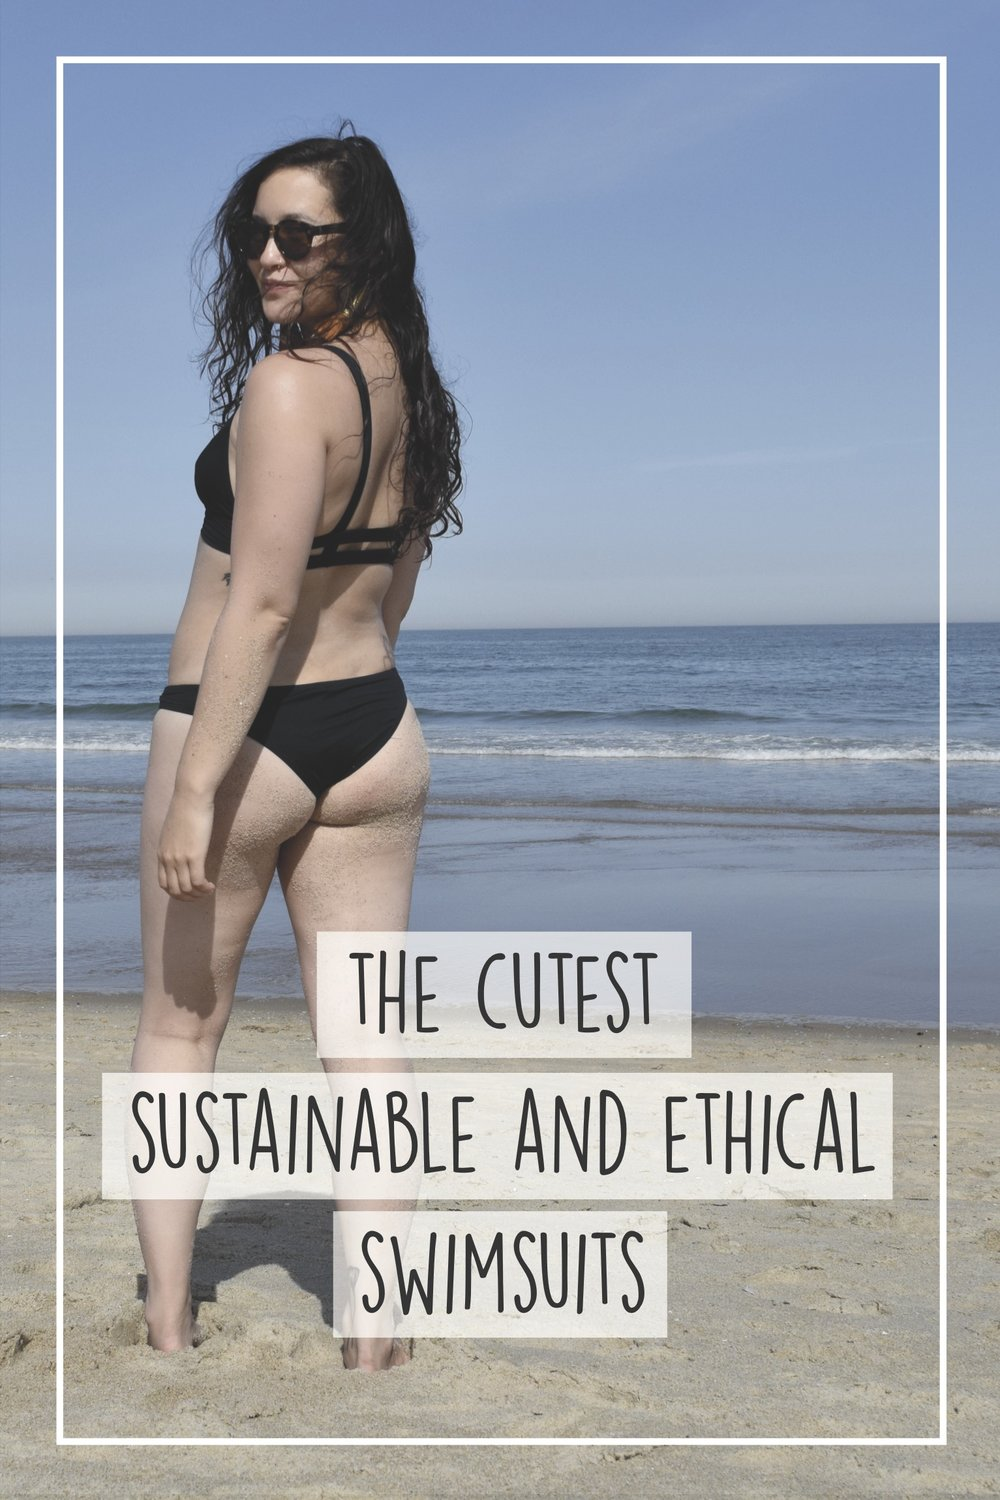 sustainable and ethical swimsuits, recycled plastic, eco friendly bathing suit